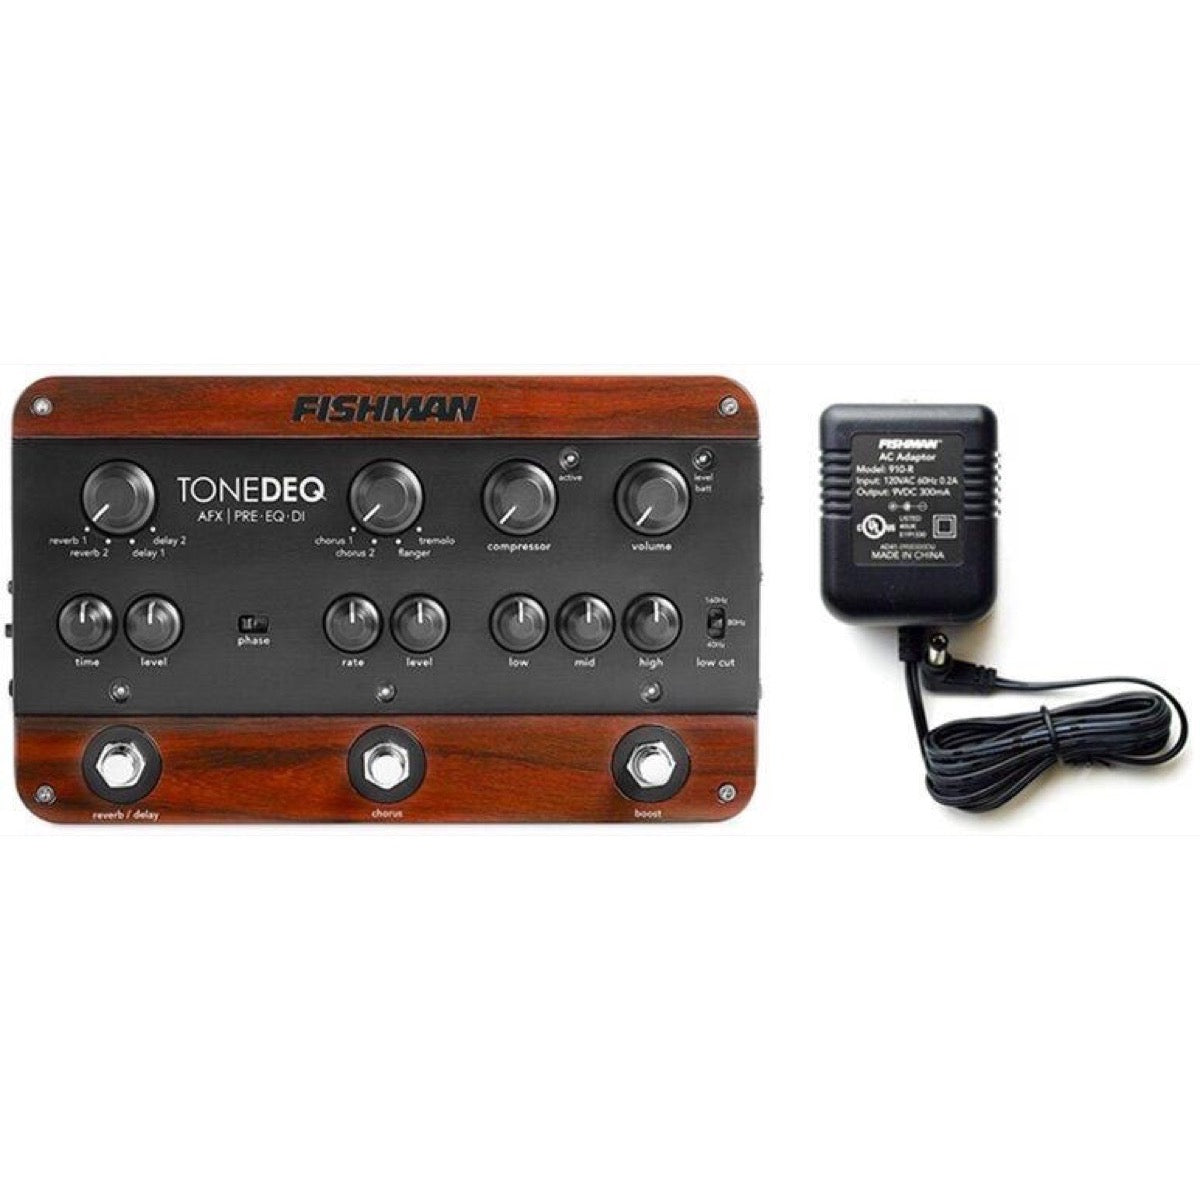 Fishman ToneDEQ AFX Preamp EQ and DI Box with Dual FX, with Free Fishman 910R Power Supply